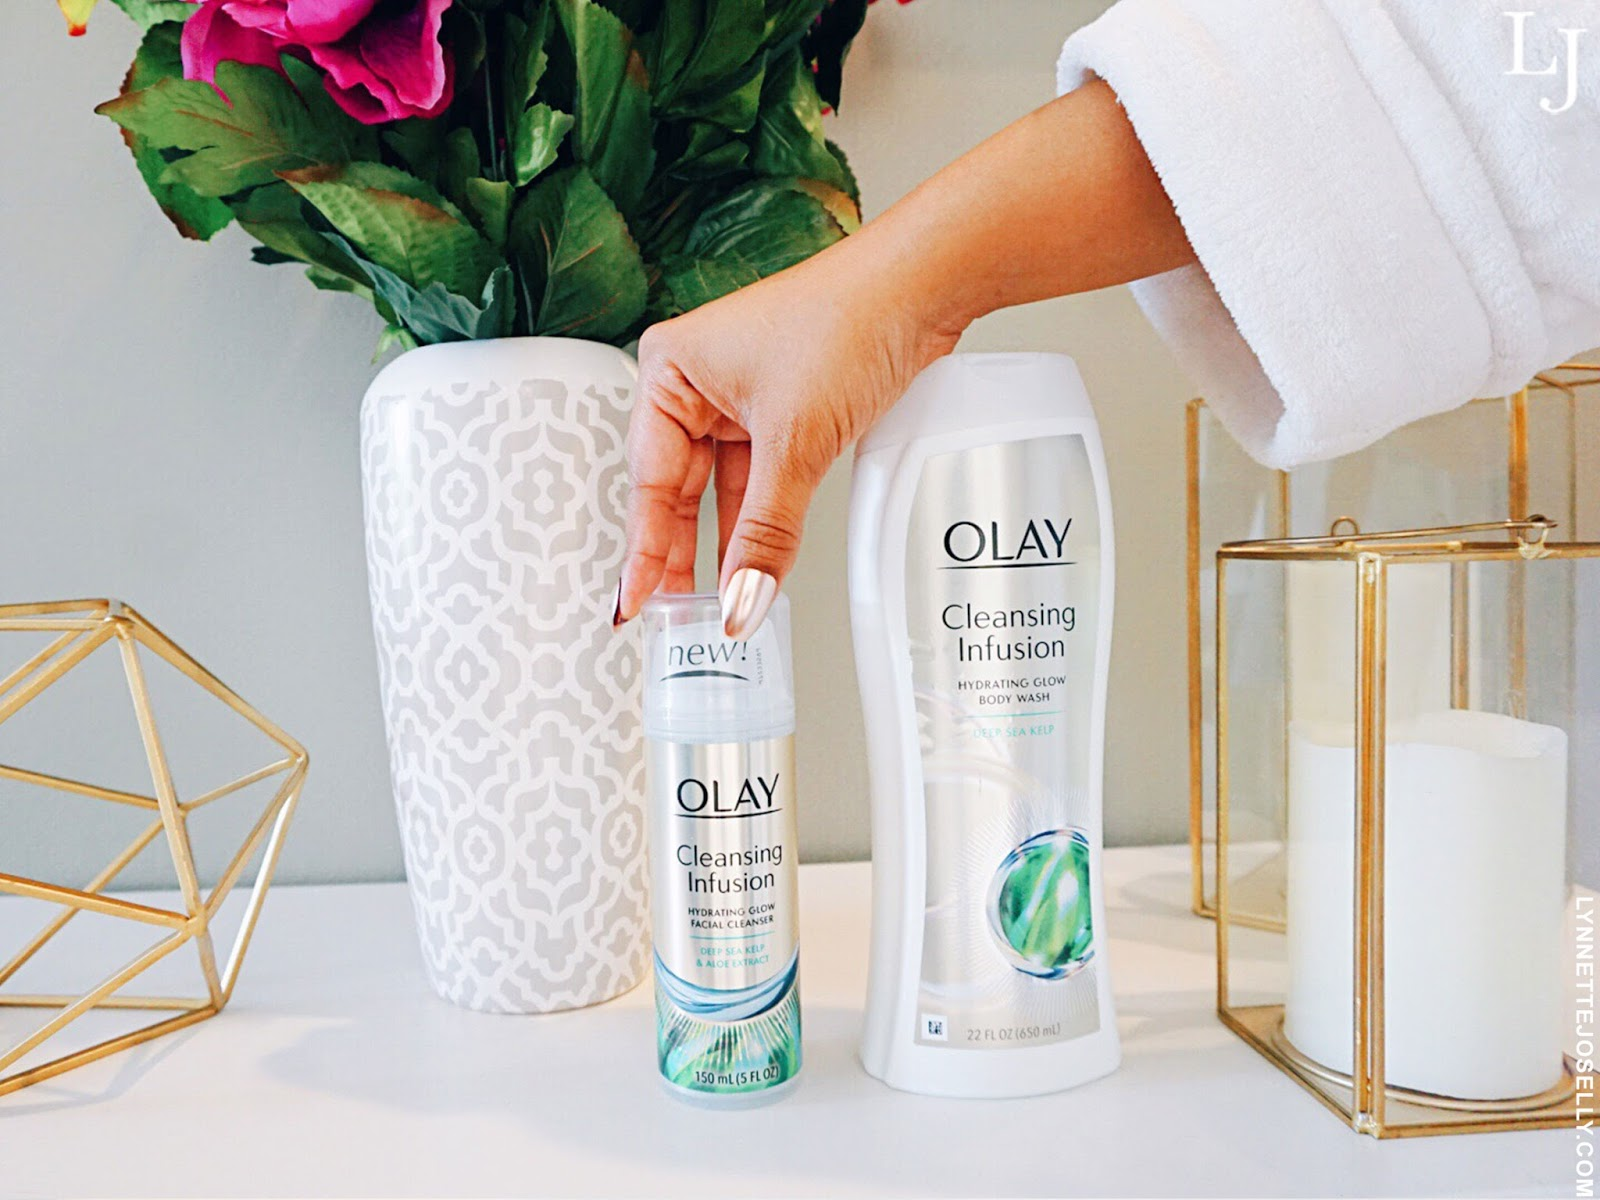 Olay-Cleansing-Infusions-Walgreens